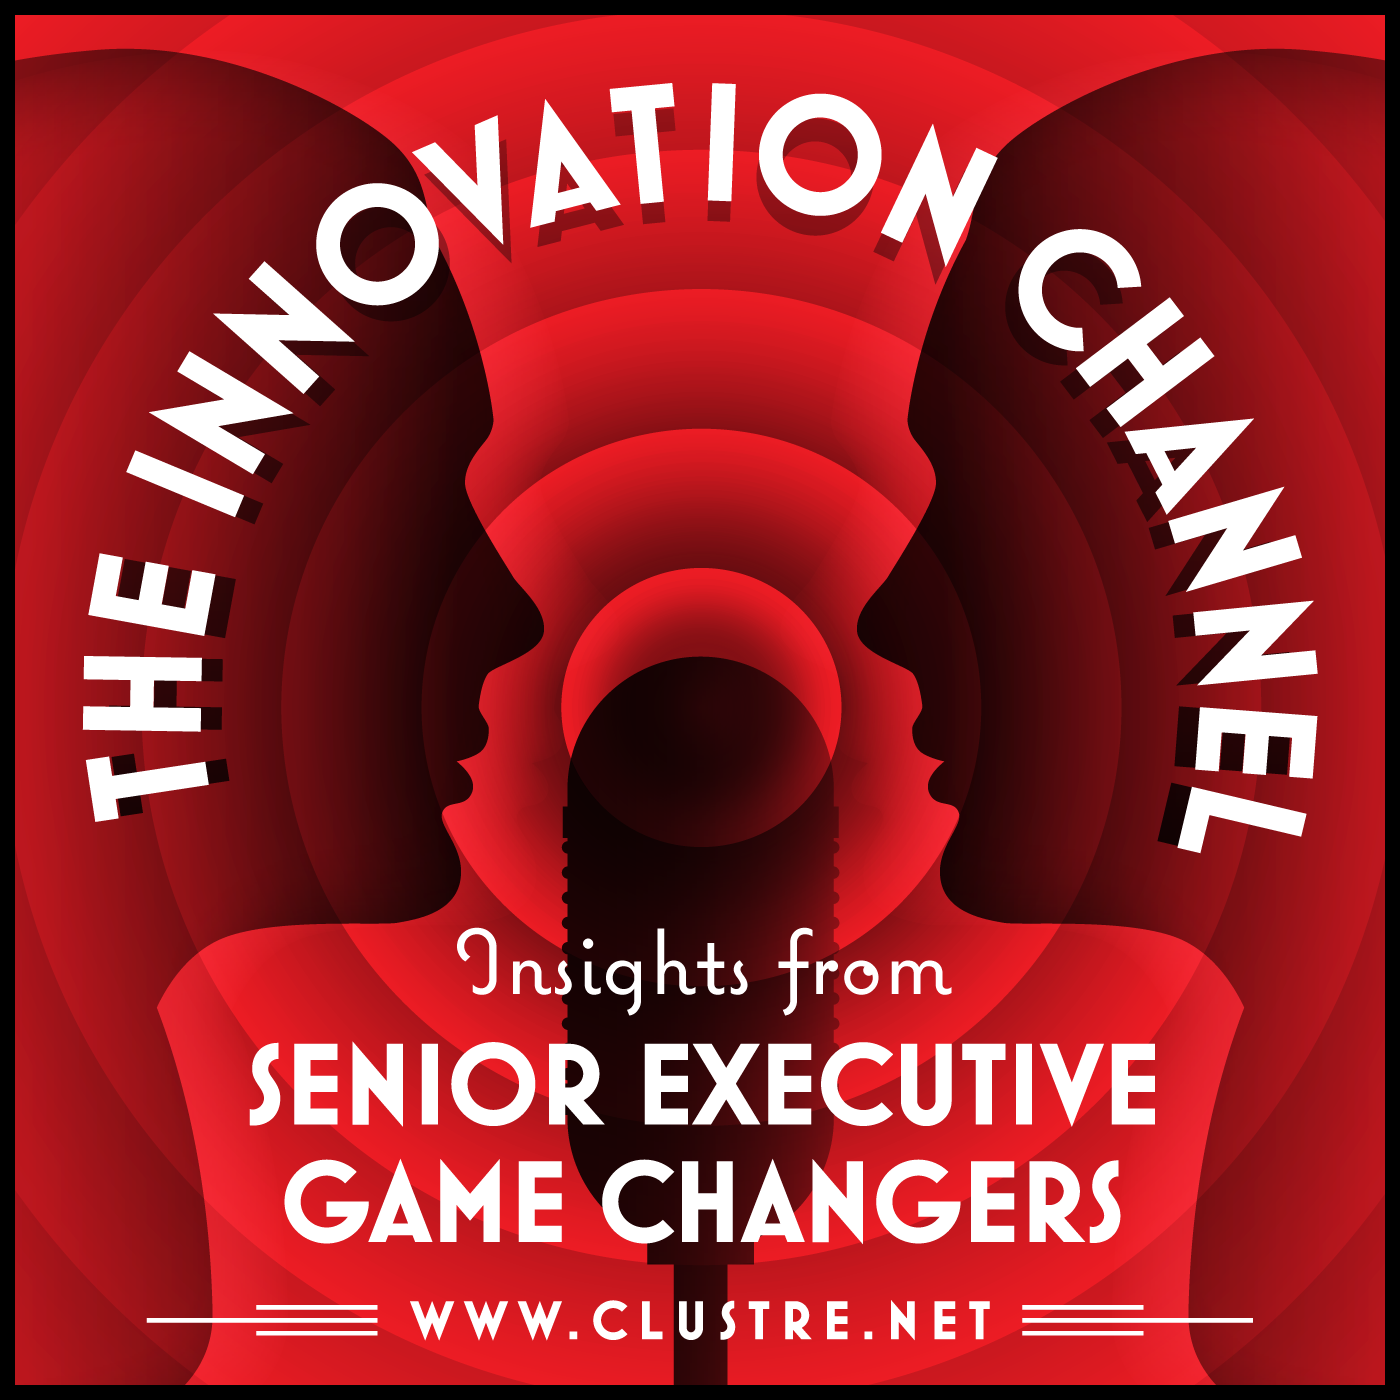 Agile Innovation - Insights from Richard Warner, CIO LV=